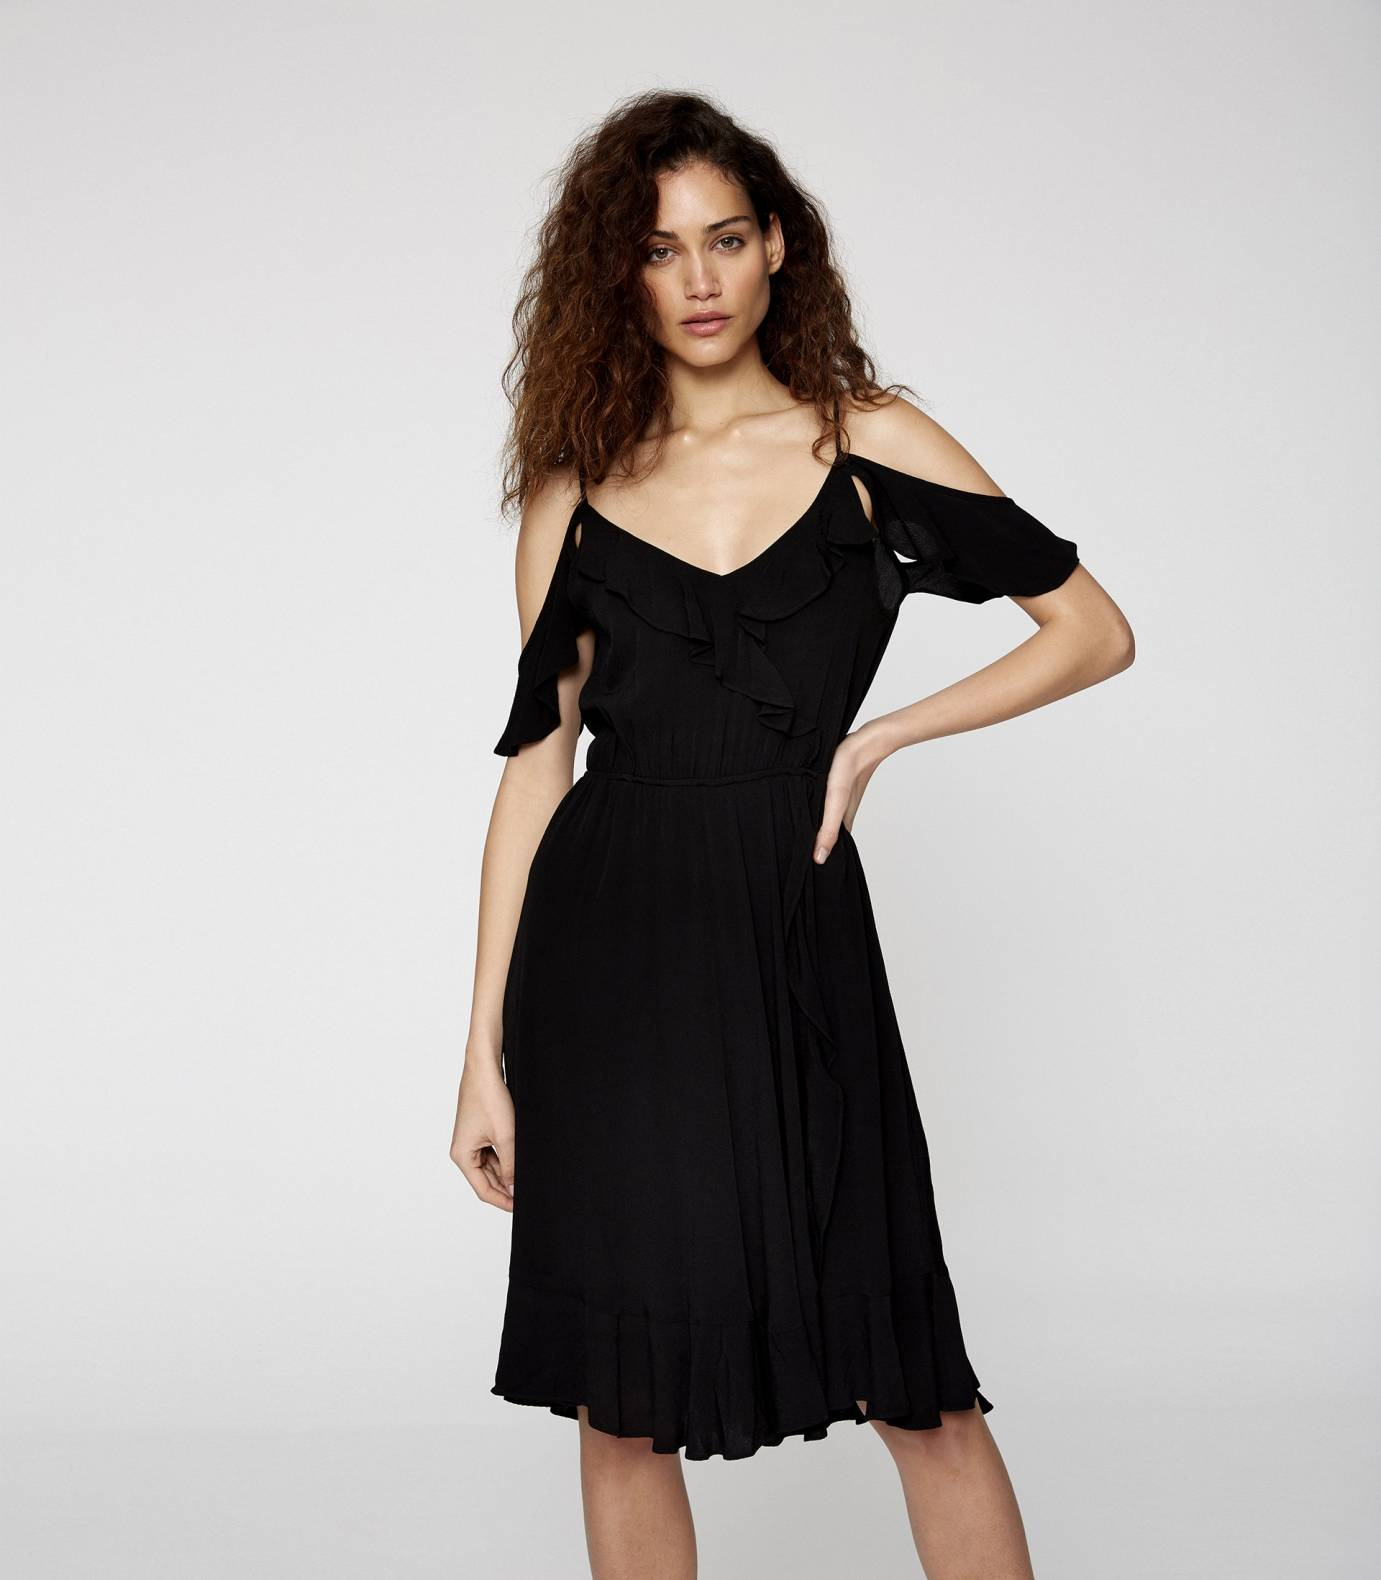 Crepe Viscose Strapped Dress